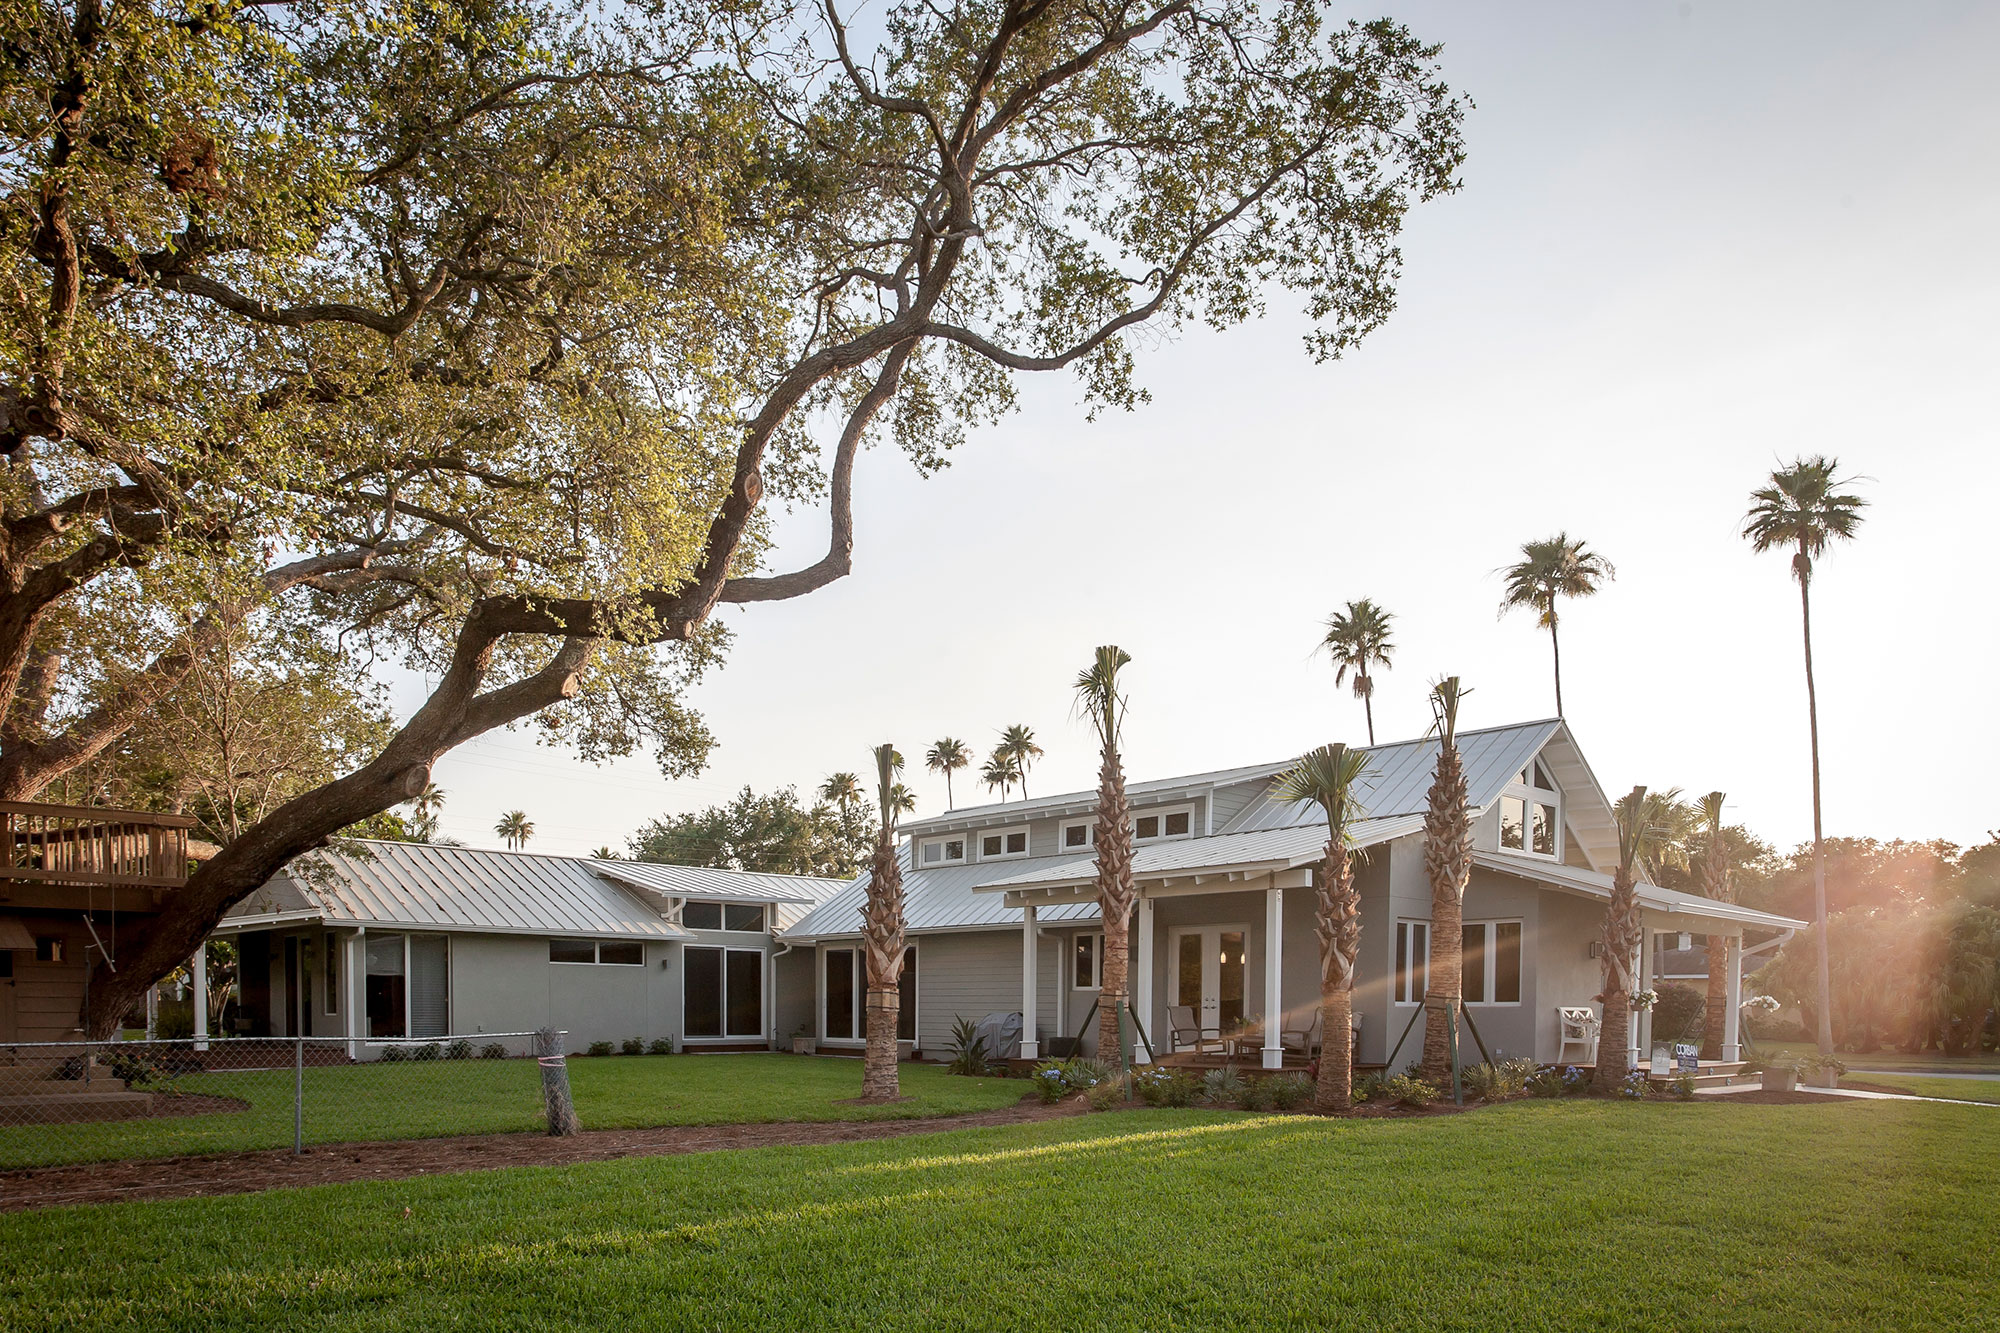 Gray and white home with large oak tree and row of palms in front.